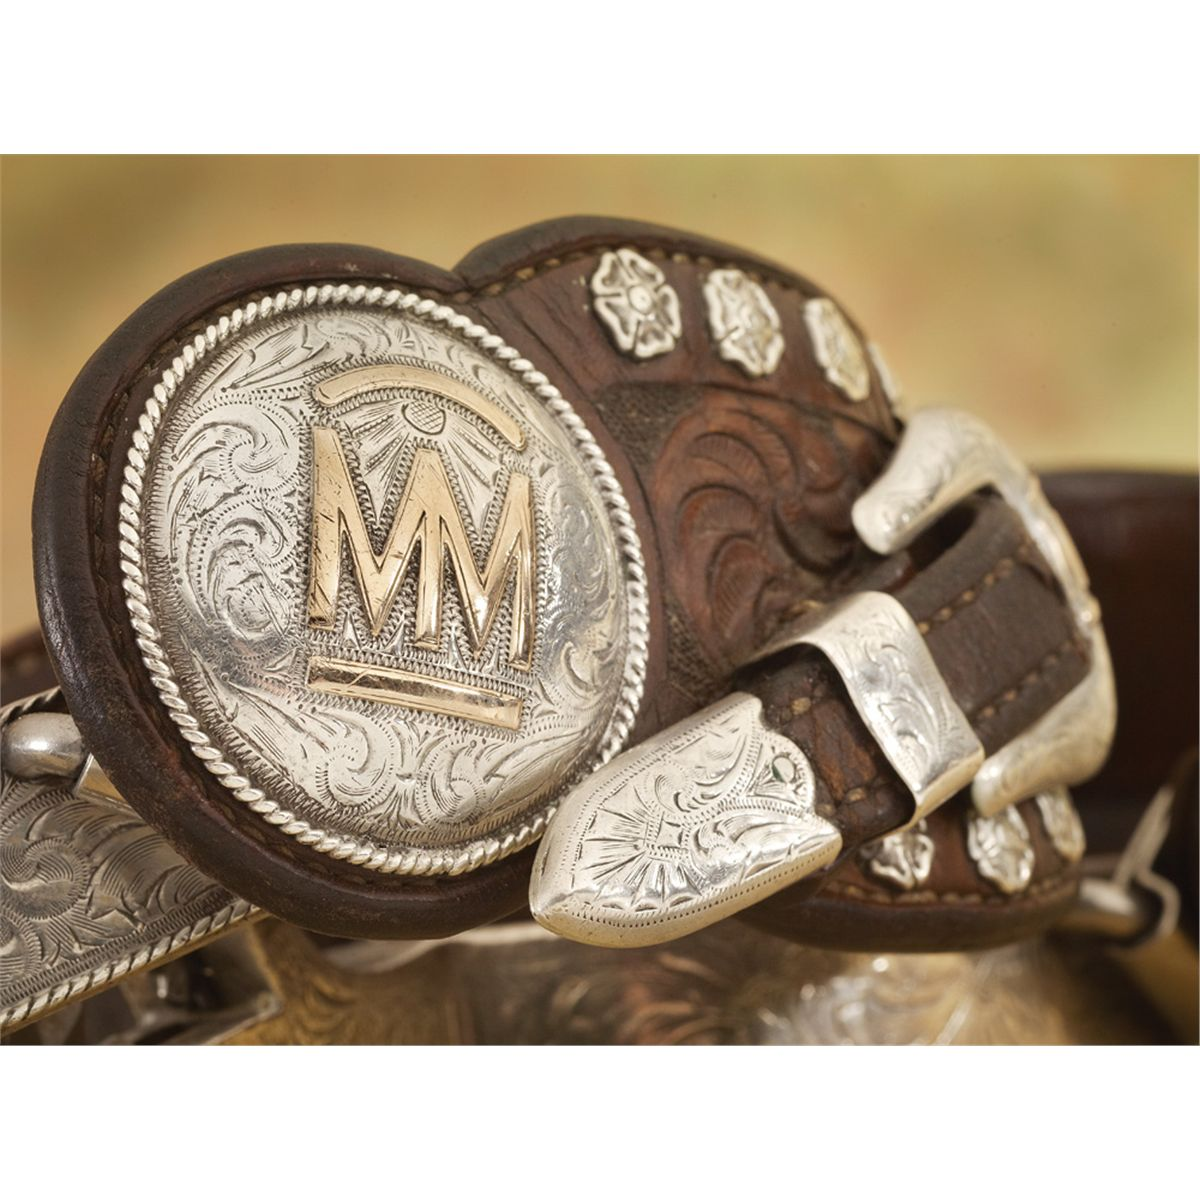 Buckle Tip Sets Tom Taylor Belts Buckles Bags Edward H Bohlin Saddle Maker High Noon Western Auction